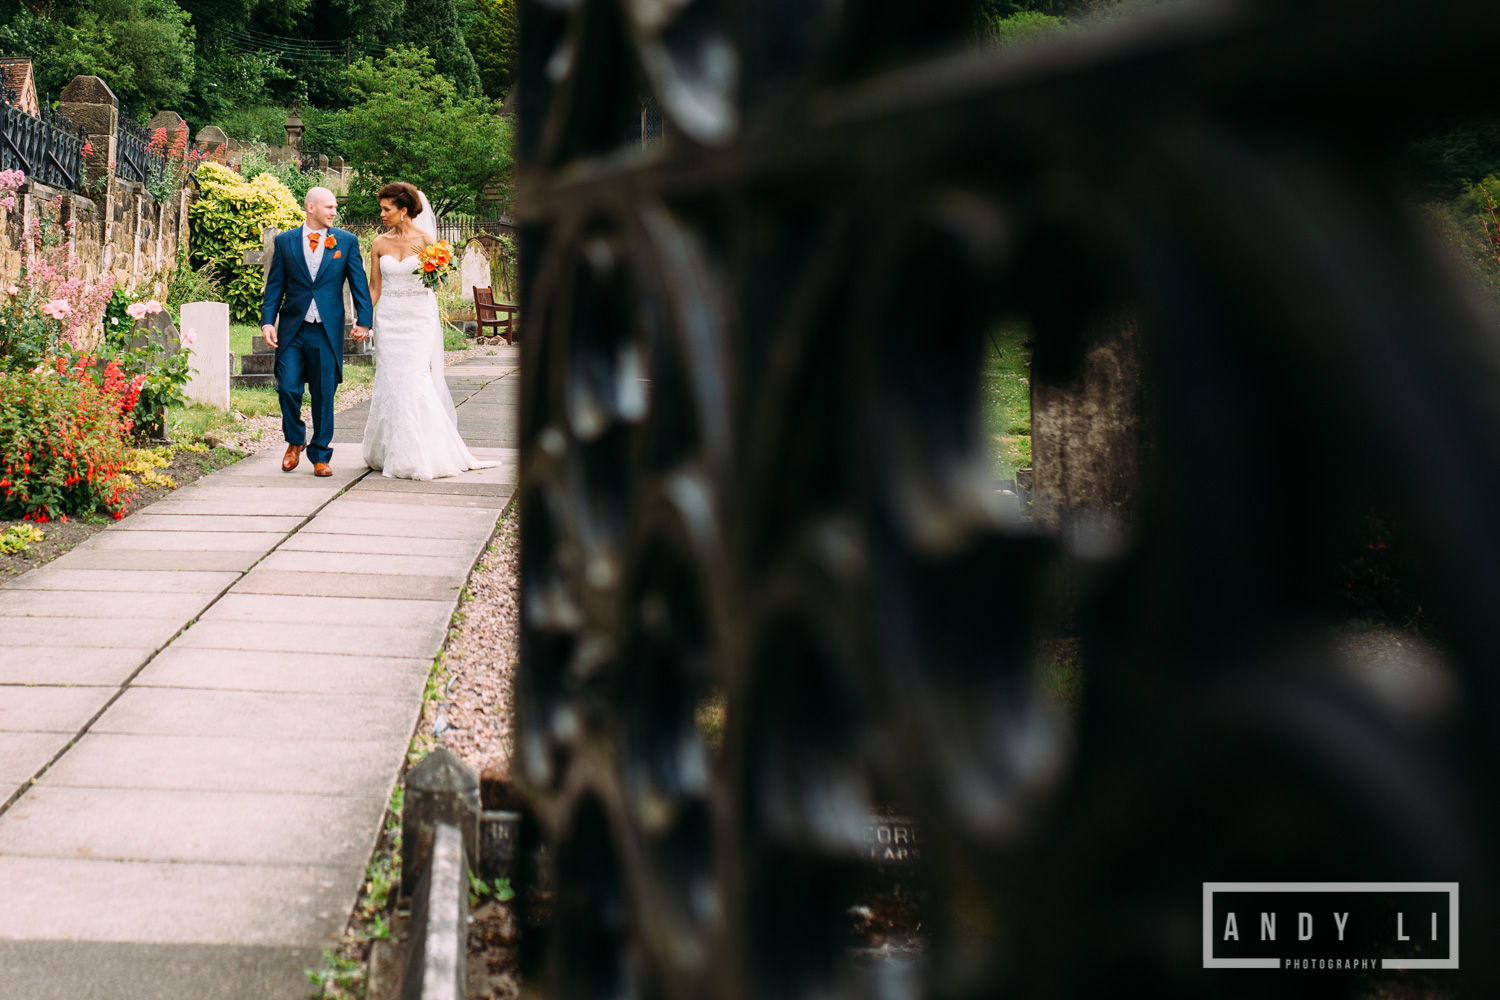 Enginuity Ironbridge Shropshire Wedding Photographer-072.jpg